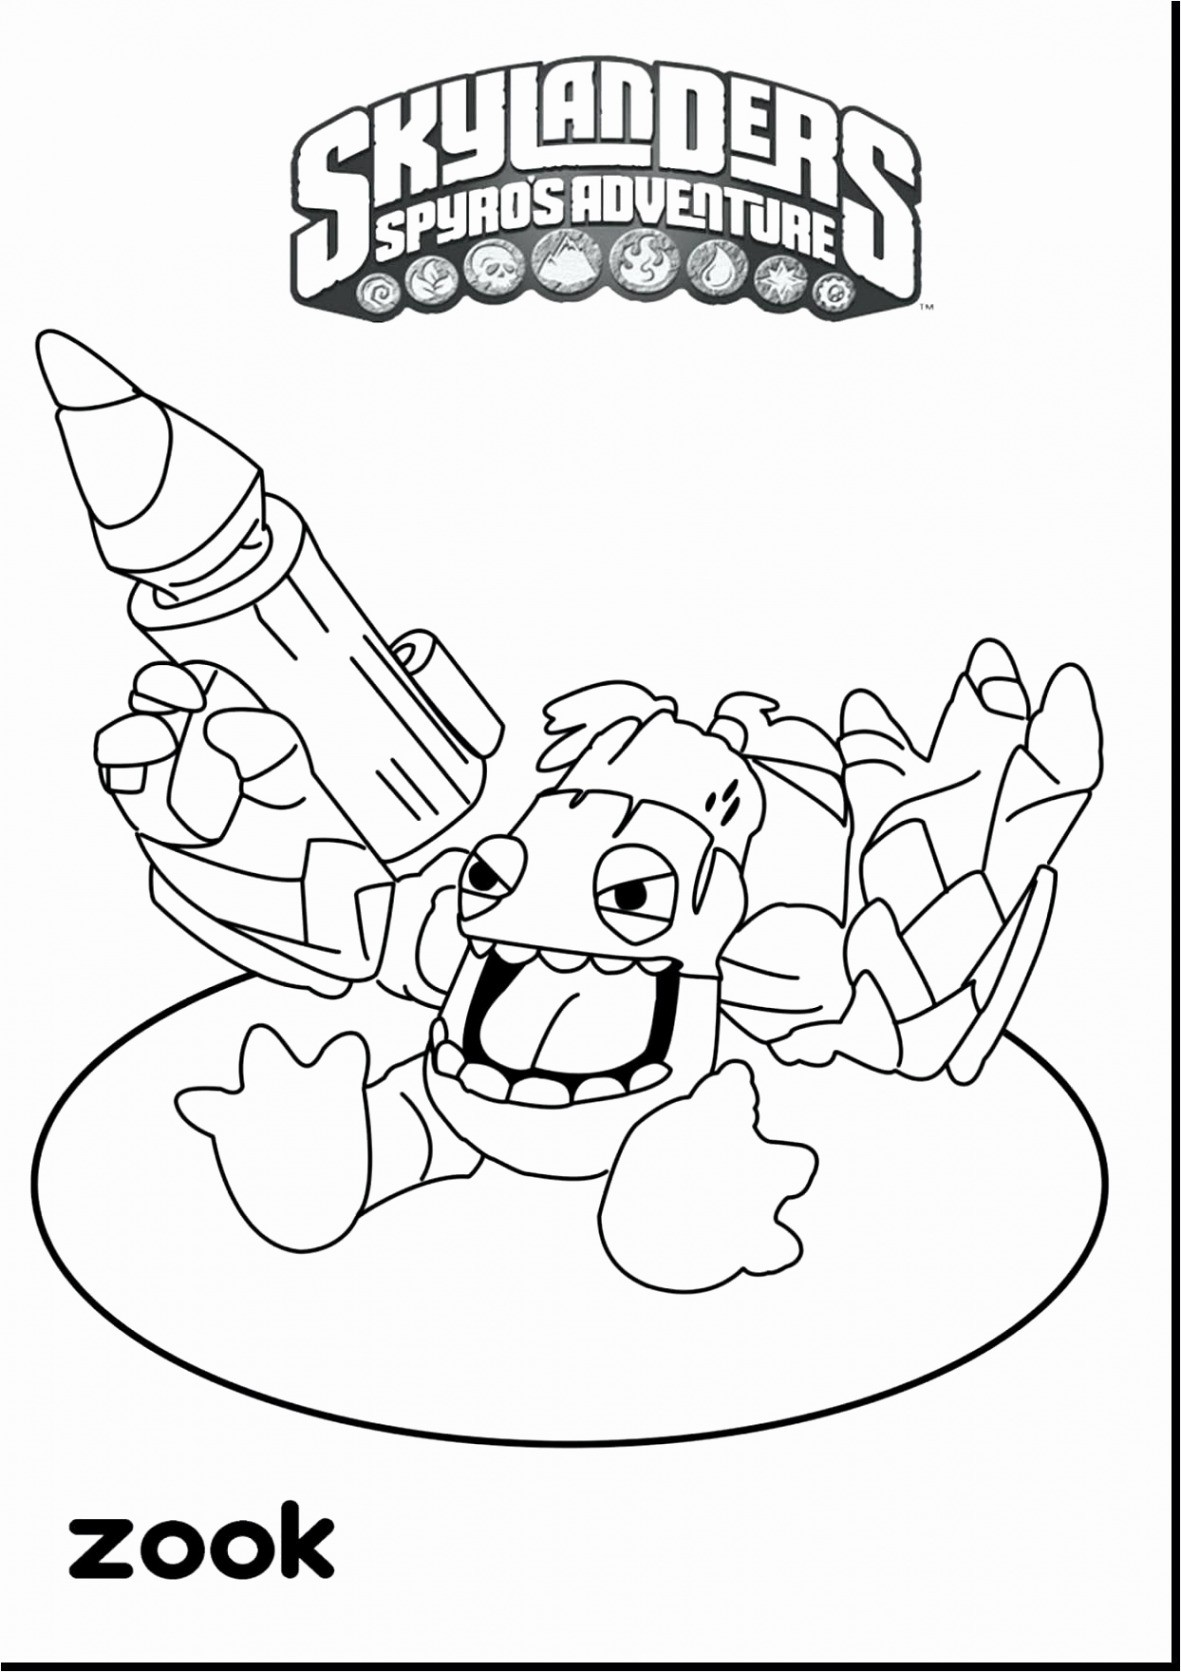 Easy Christmas Coloring Pages Printable With Stockings Fresh Free